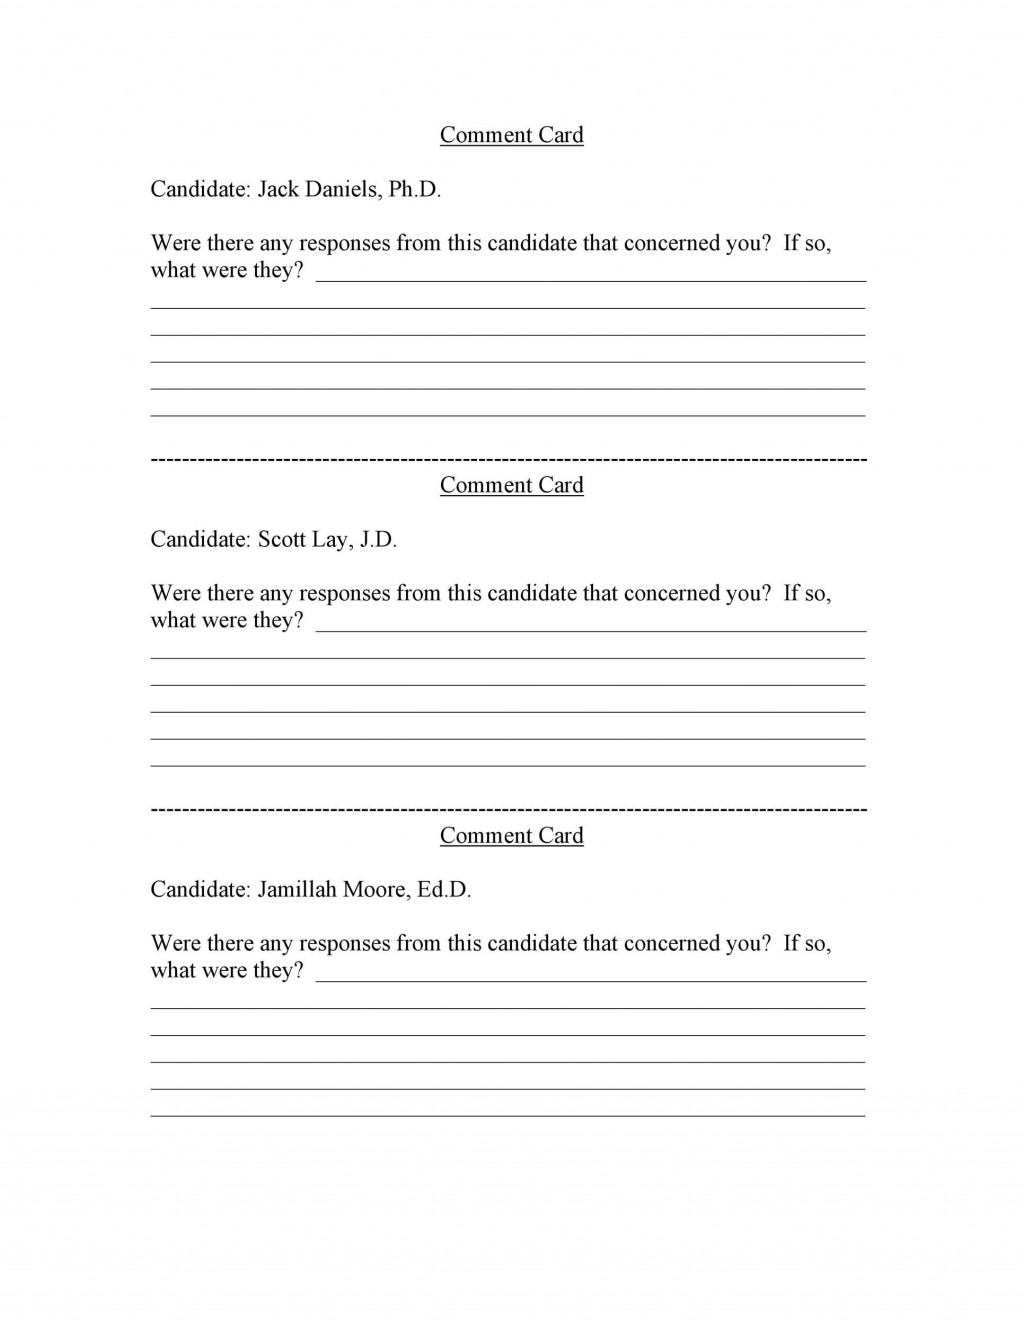 006 Impressive Restaurant Comment Card Template For Word Picture Large